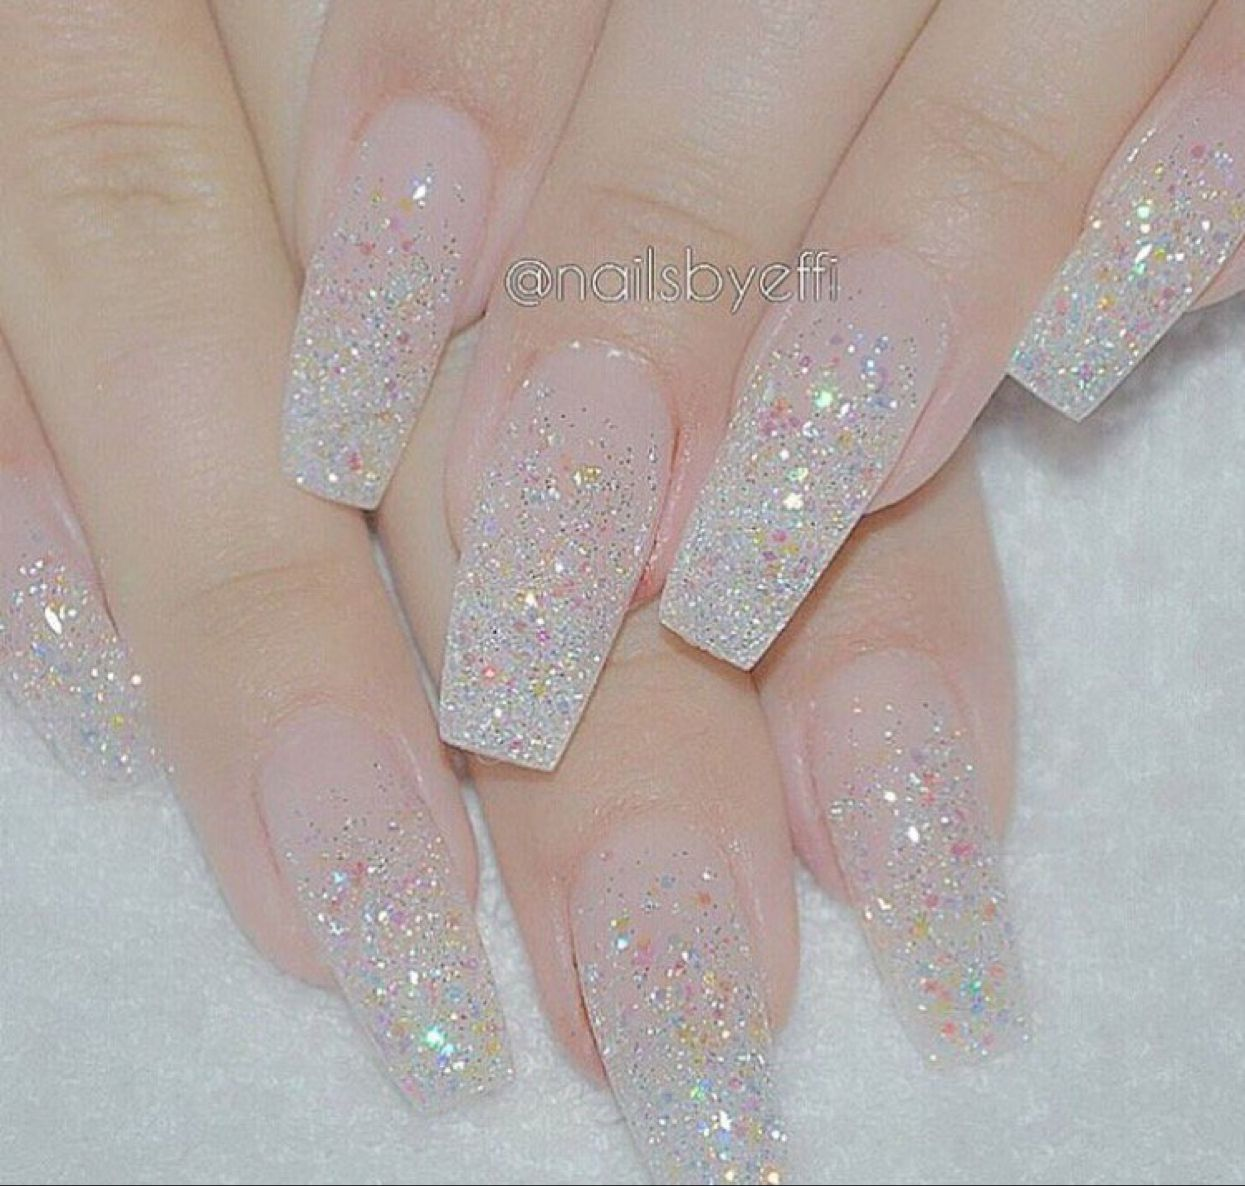 Pin by Ashley Clark on Nails in 2020 | Clear glitter nails ...